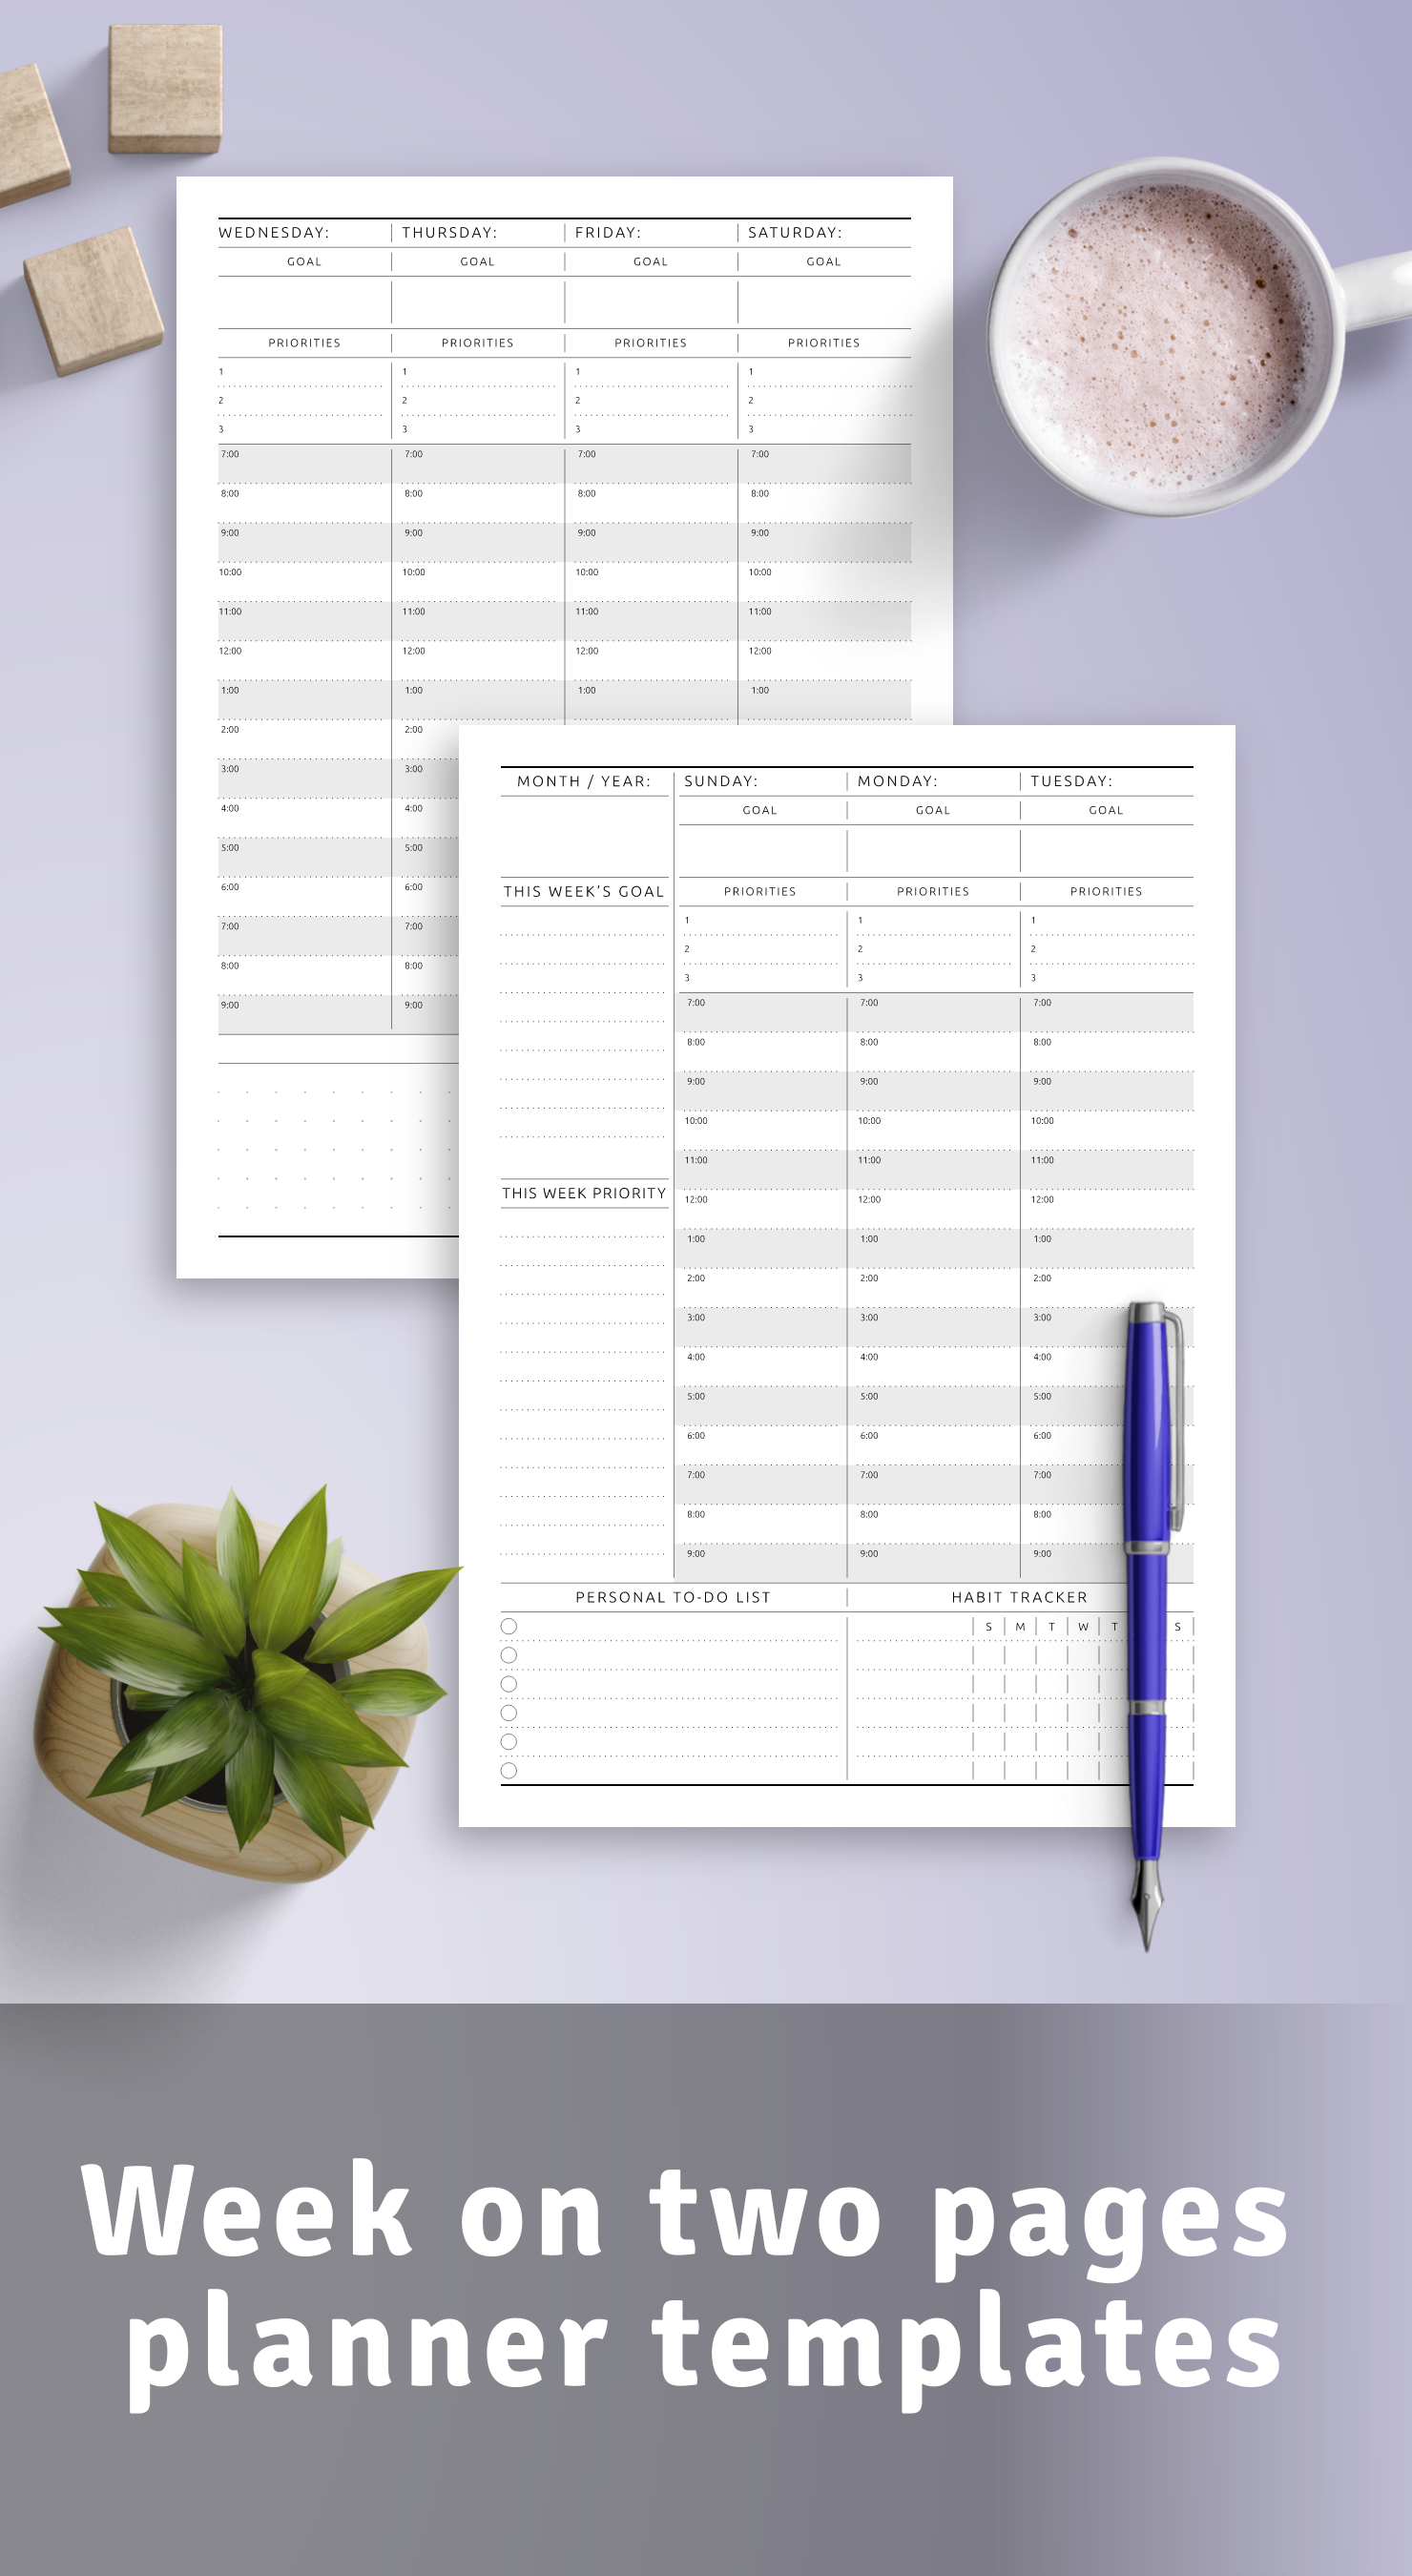 Week on two pages planner templates PDF